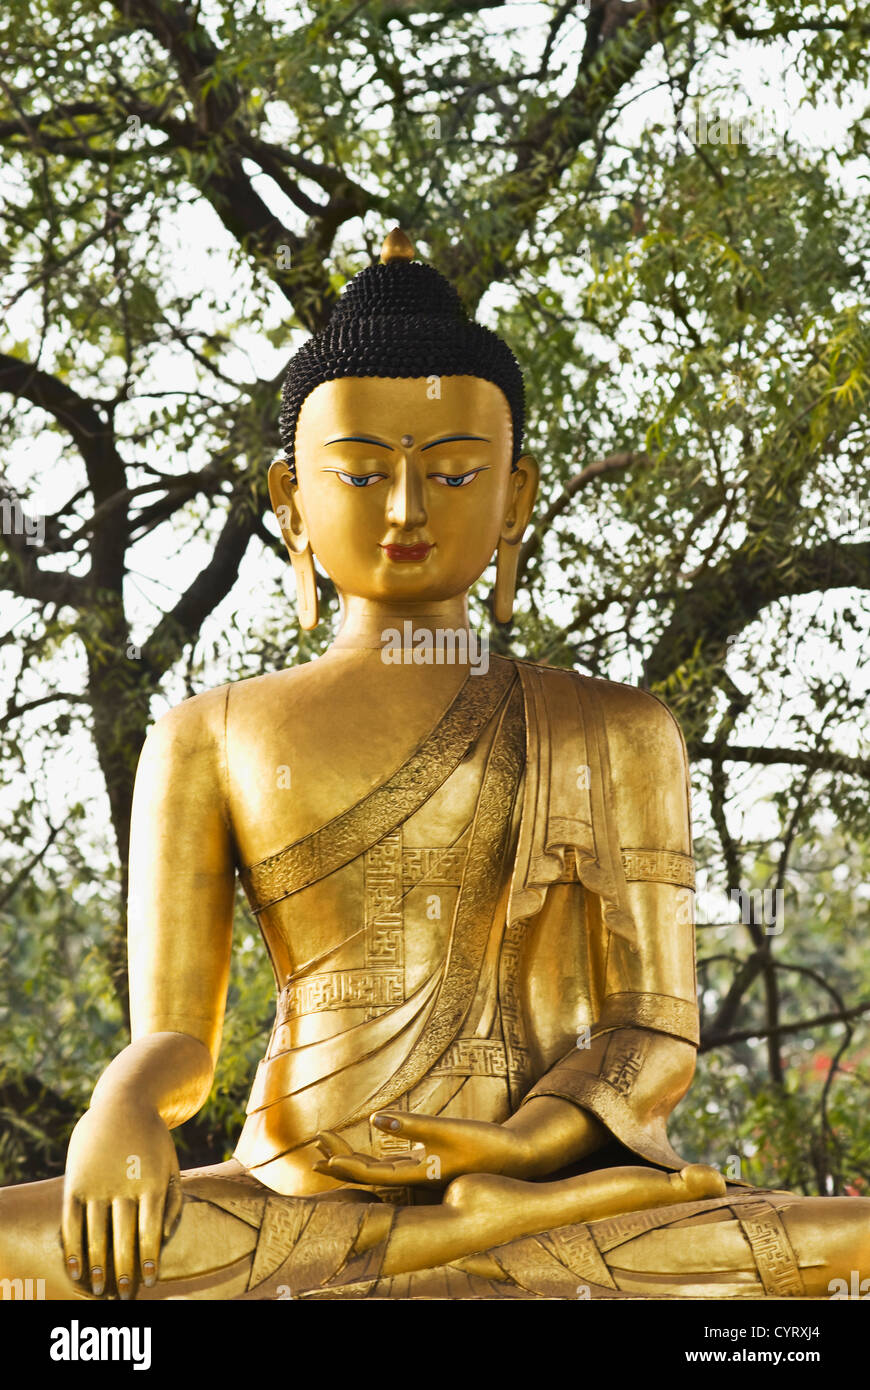 statue of lord buddha in a park new delhi india stock photo